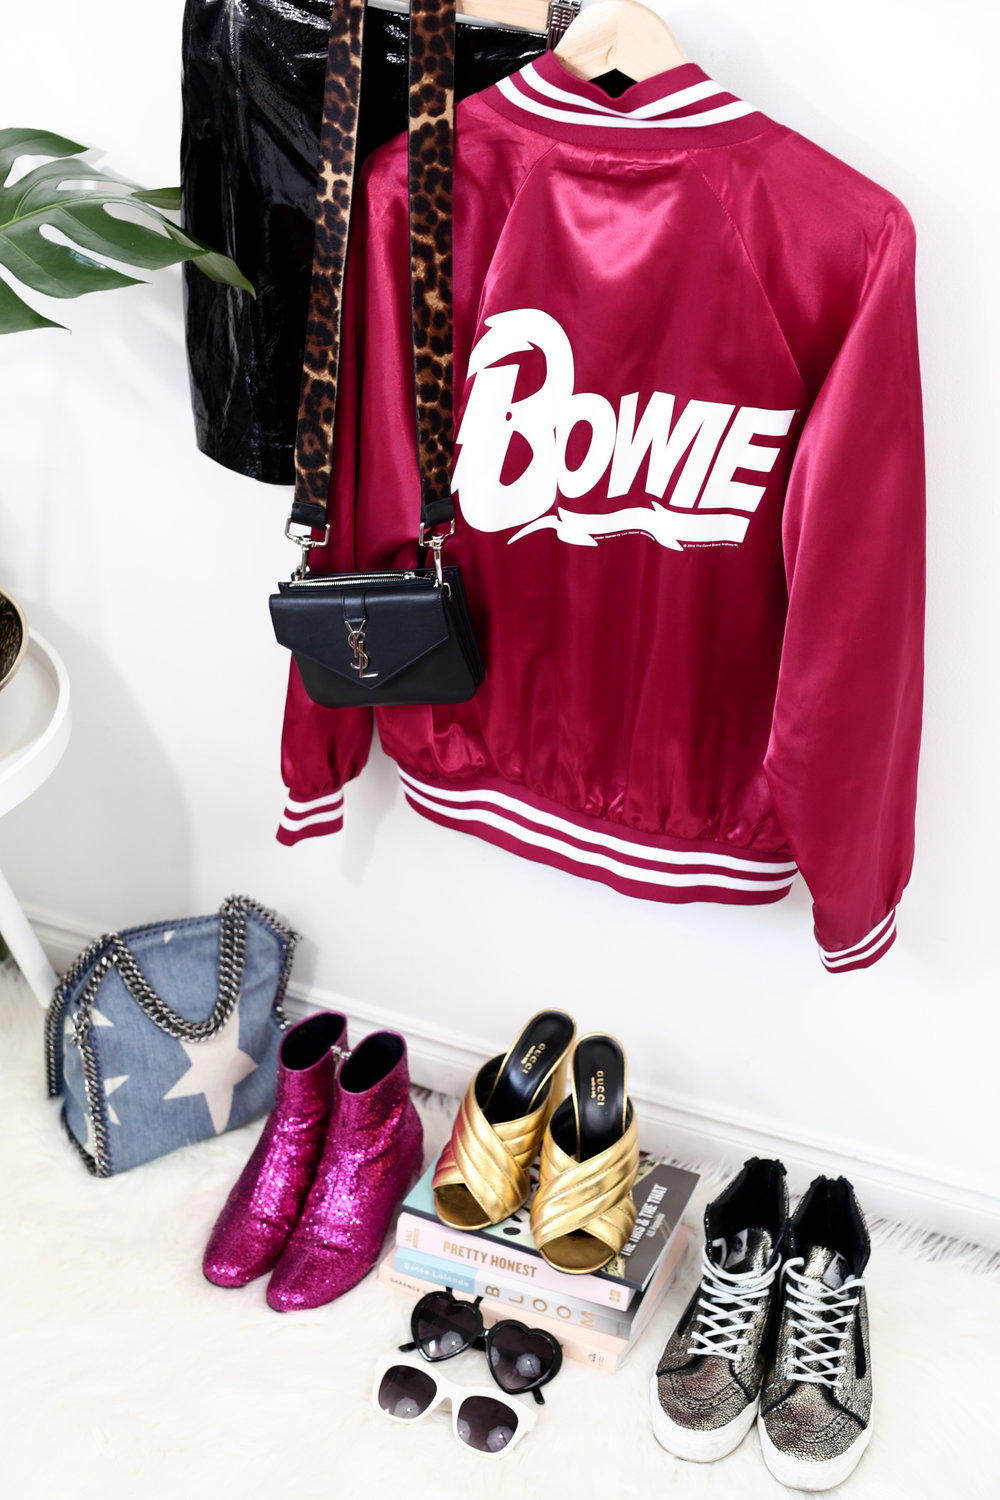 gold gucci sandals and red bowie jacket forever 21 stella mccartney star bag_7921.jpg